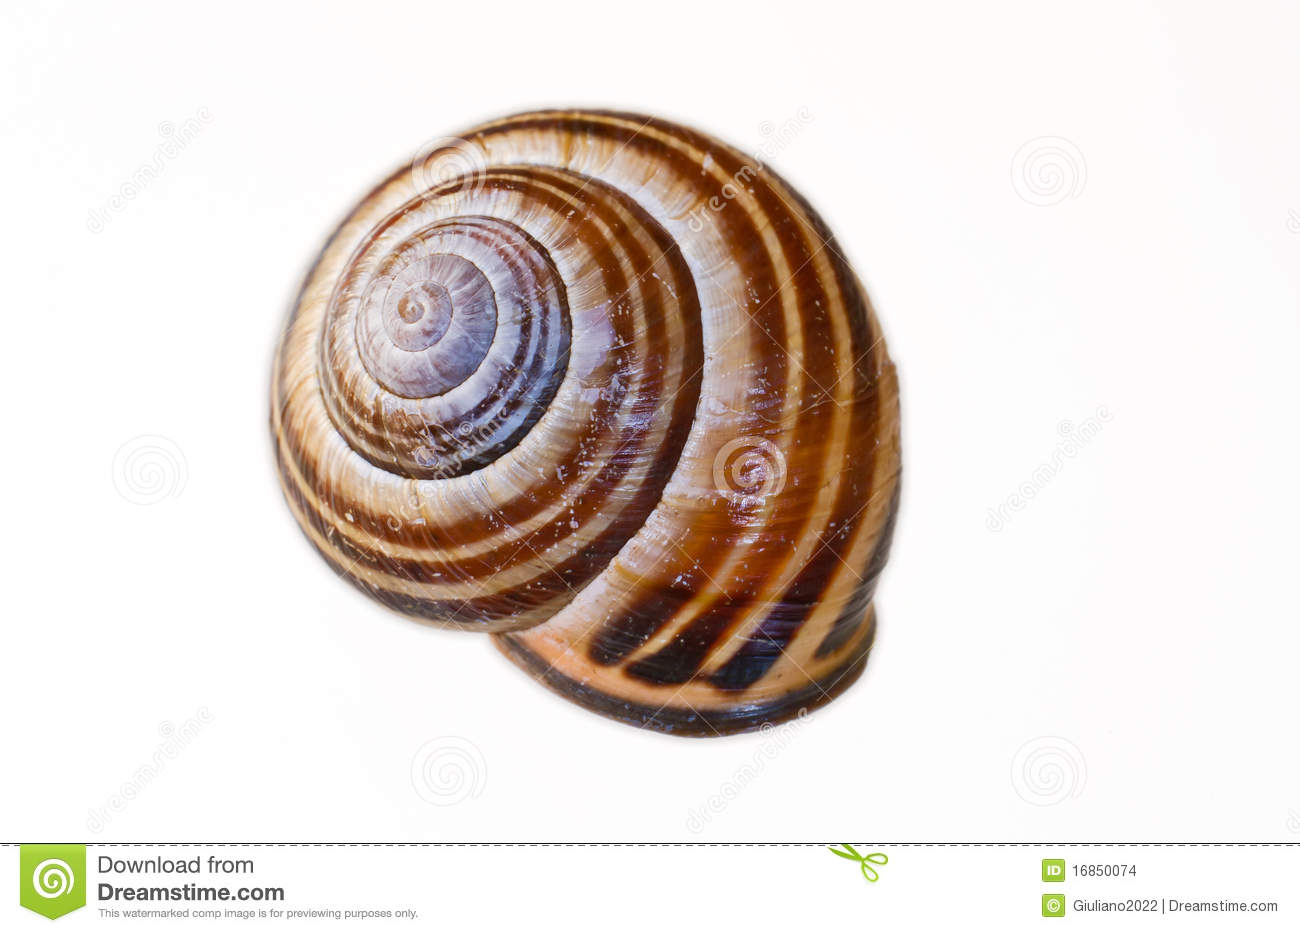 Escudo do caracol